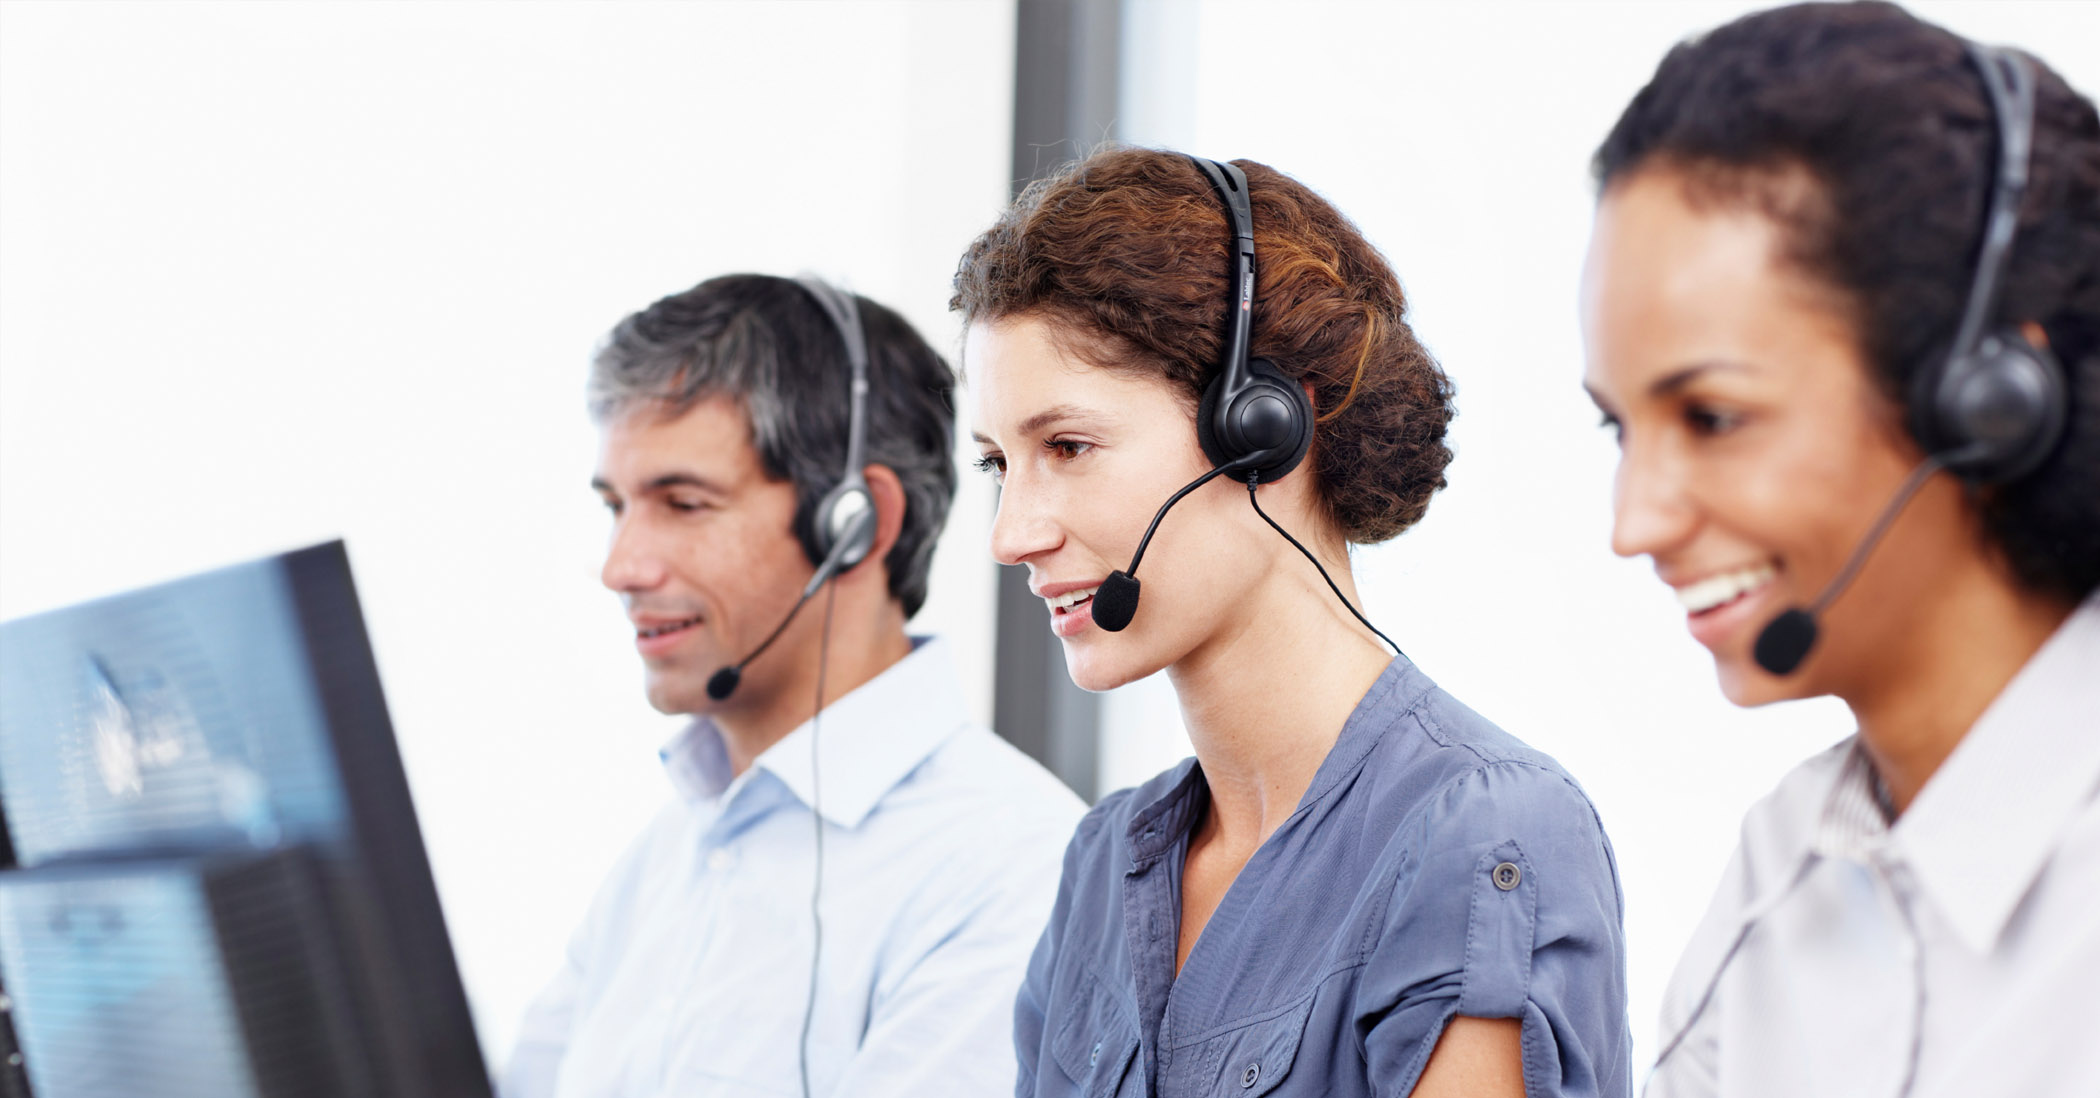 Coast Professional Call Center Employees